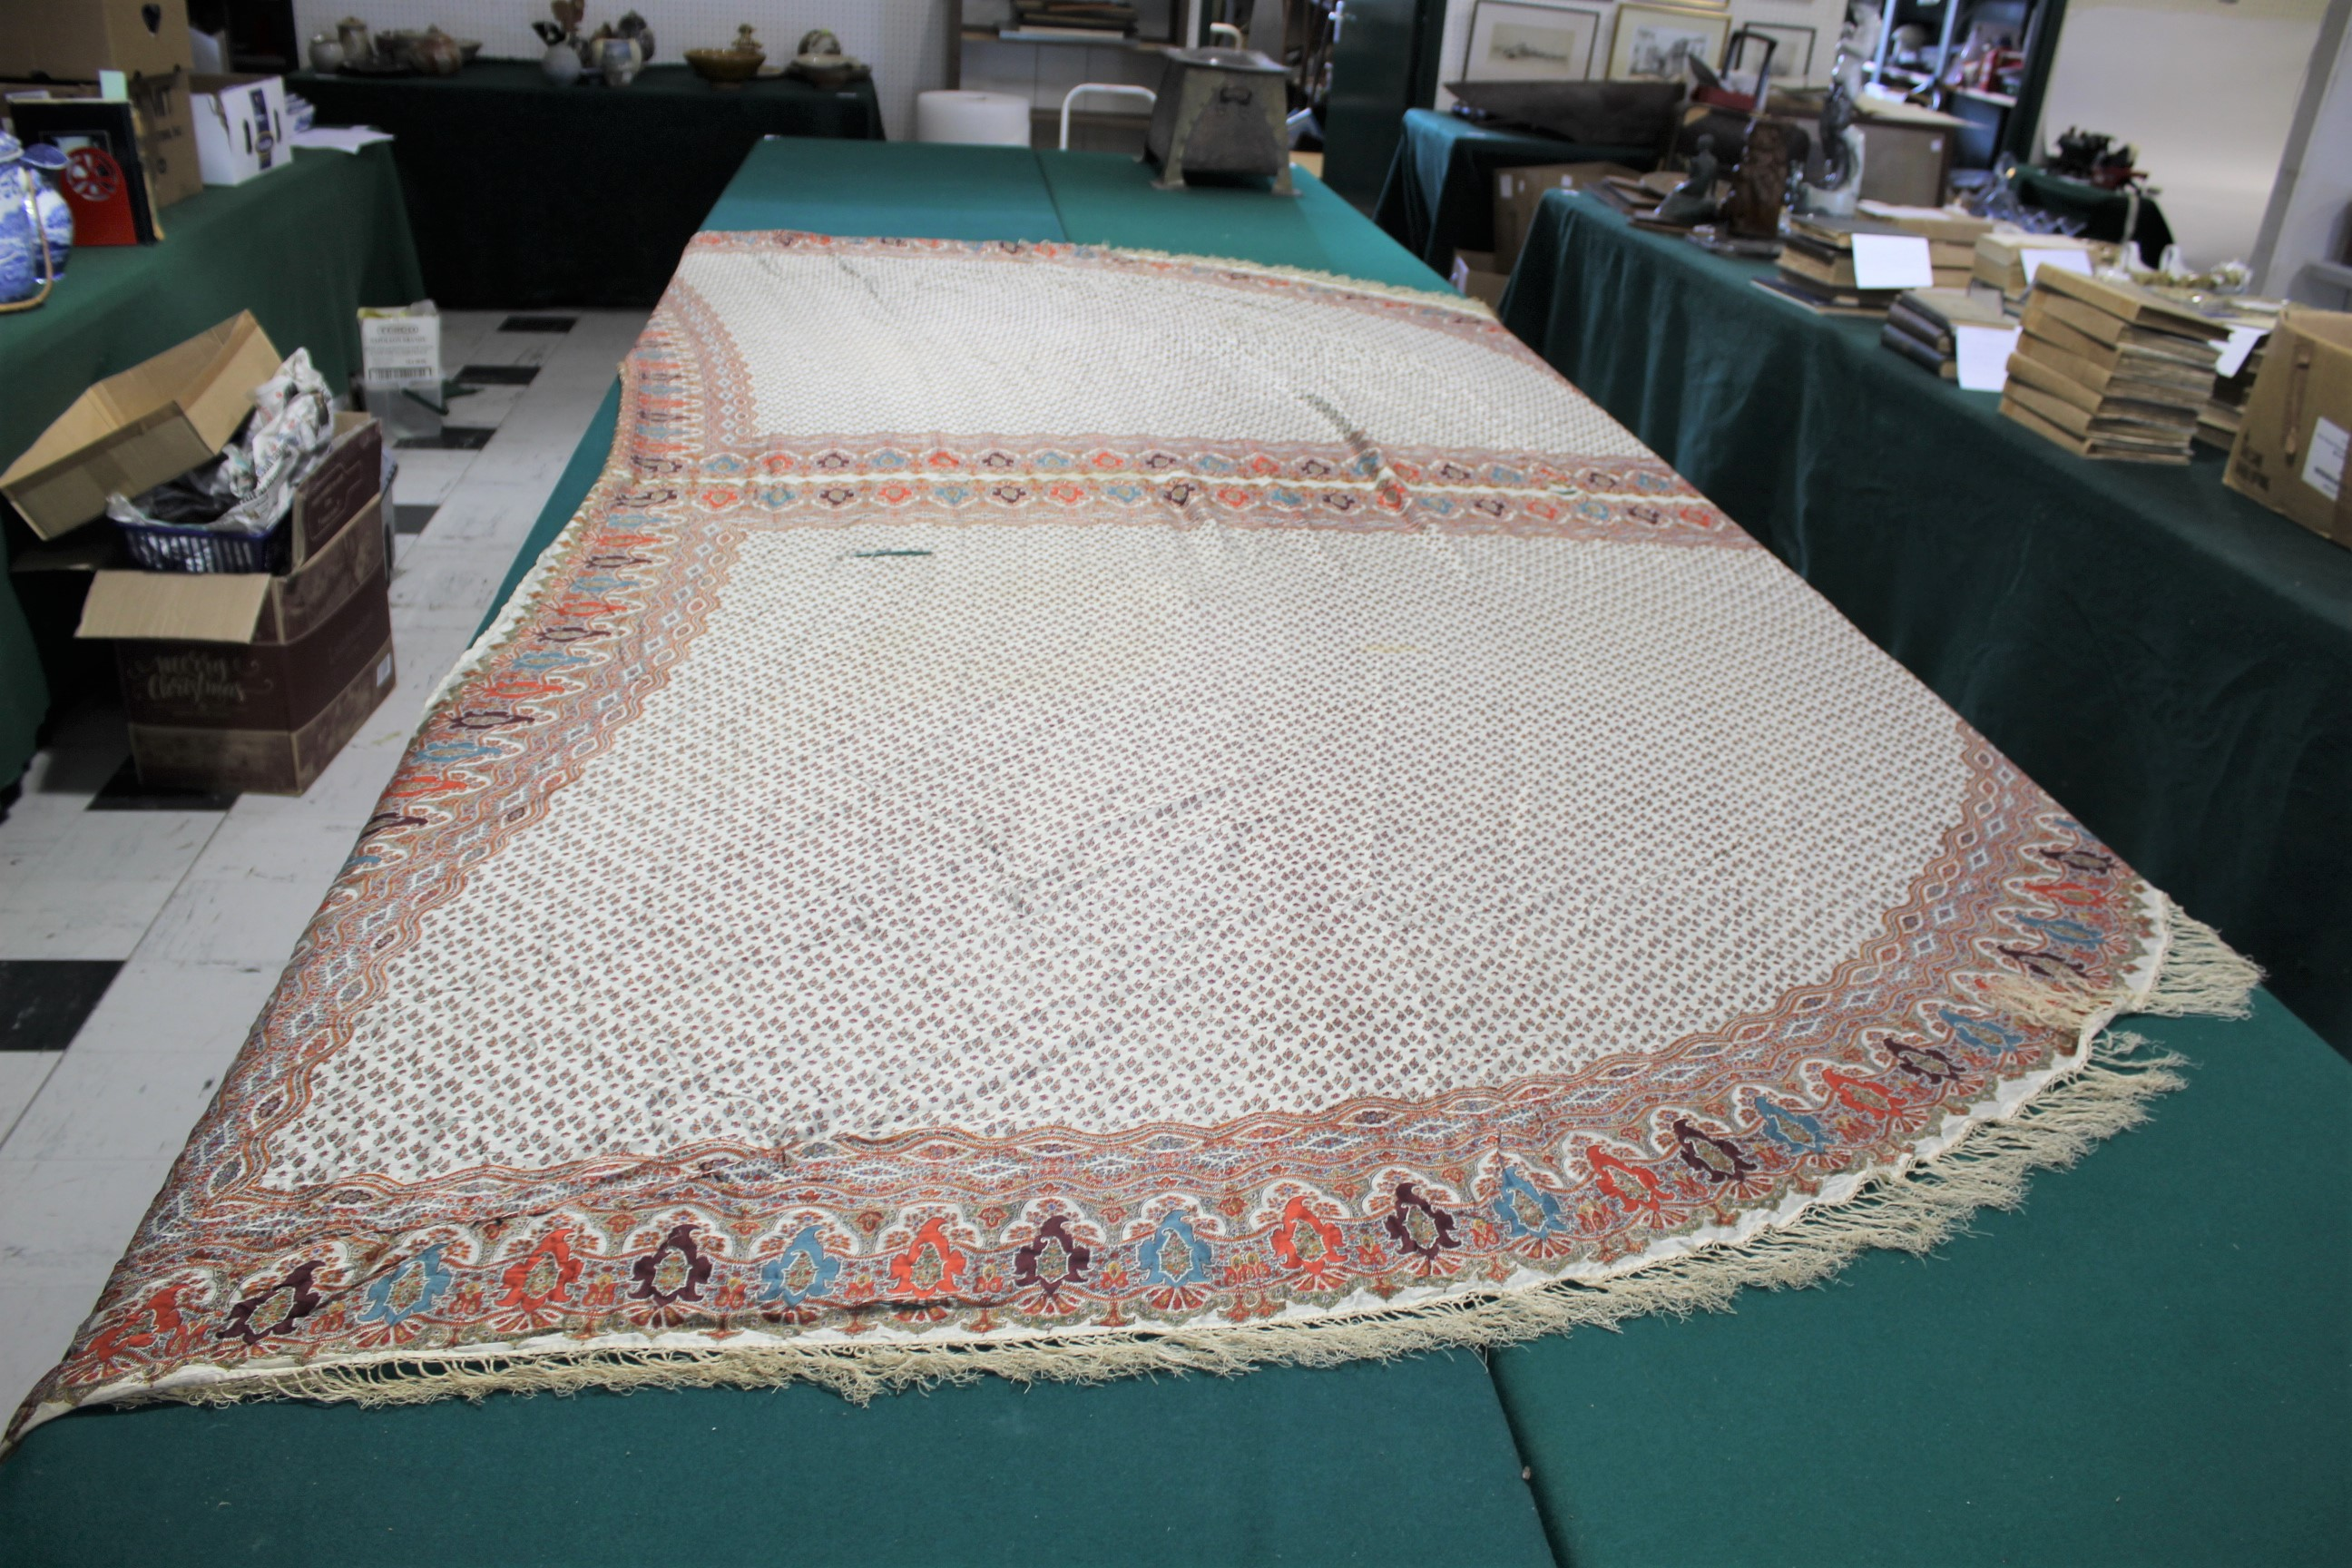 19THC PAISLEY SHAWL a mid 19thc paisley wool cashmere shawl (264cms by 126cms), and also with a fine - Image 8 of 9